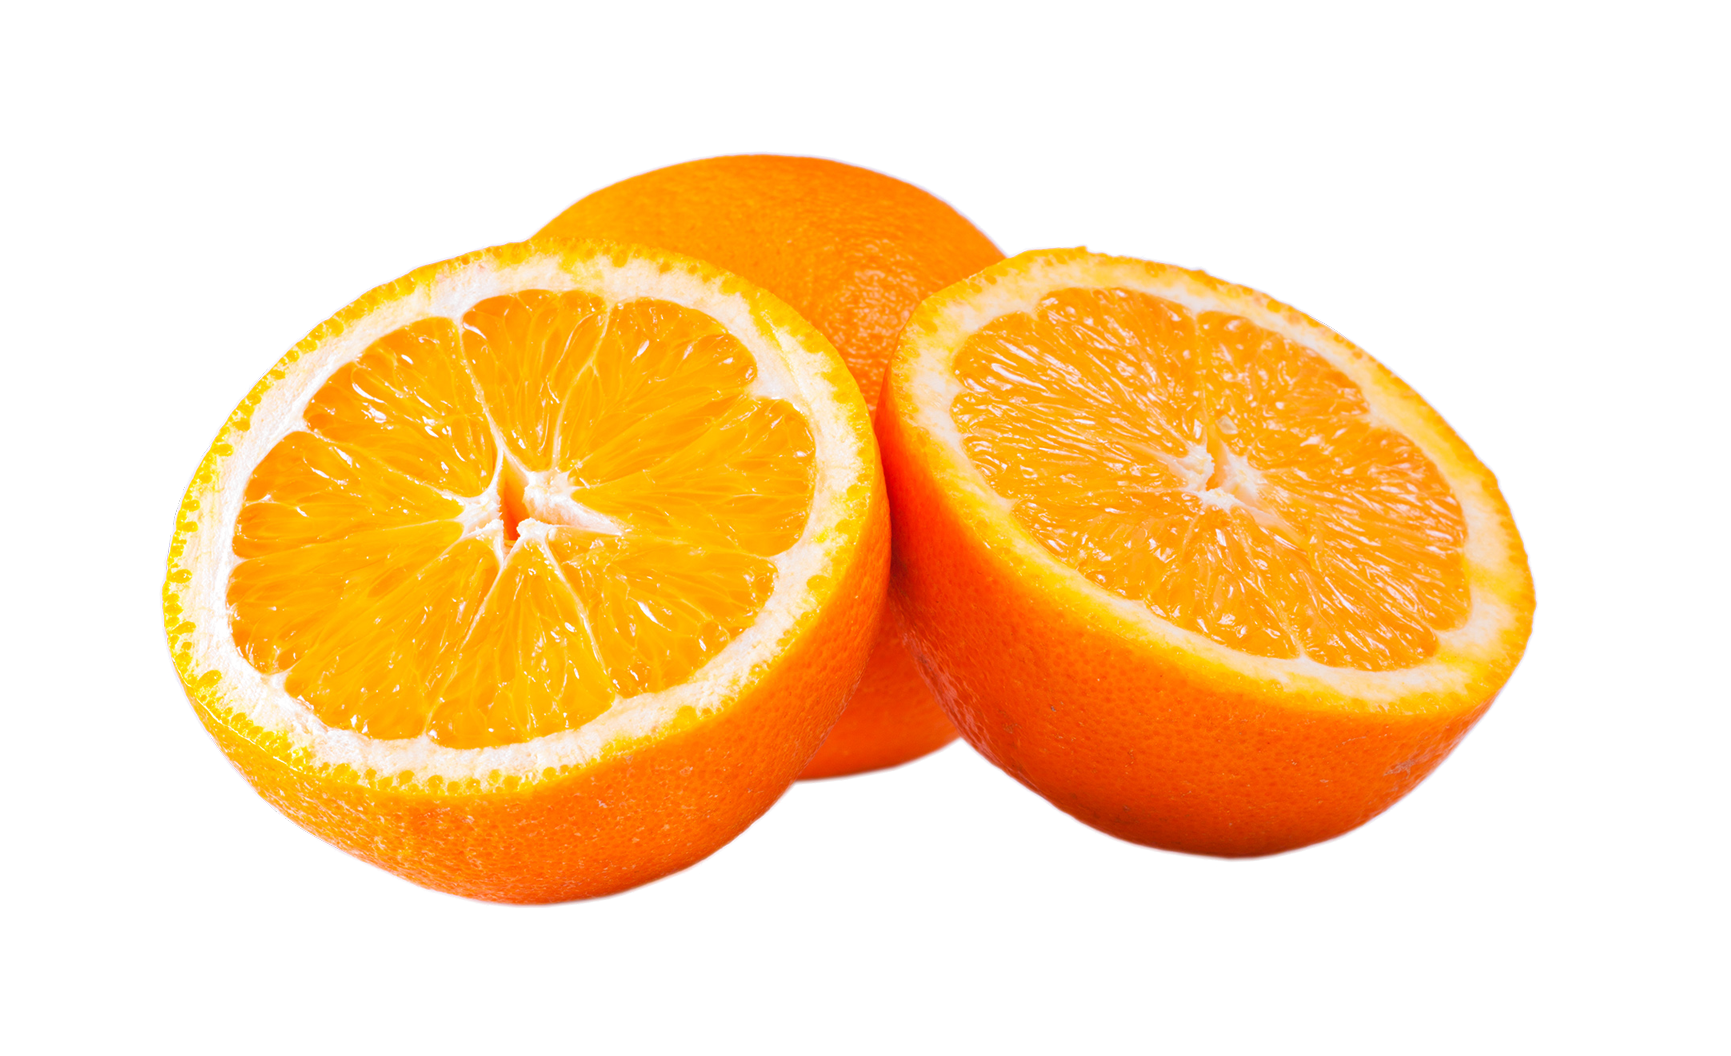 Orange PNG Image - Orange PNG